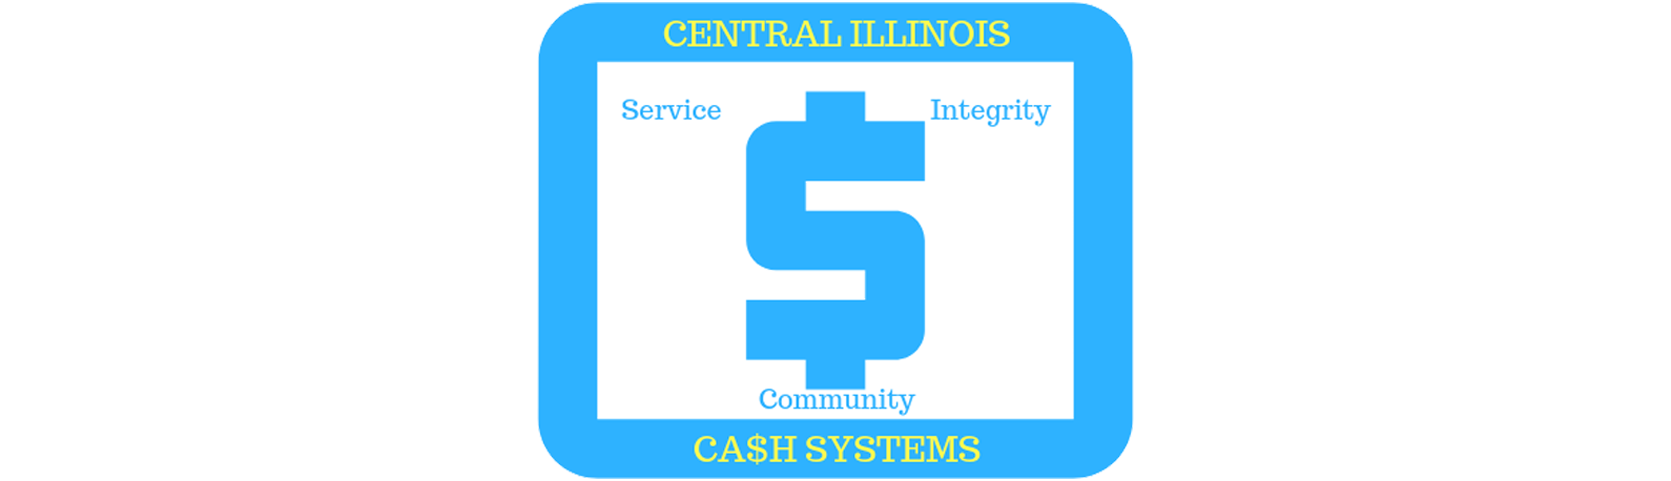 Central Illinois Cash Systems